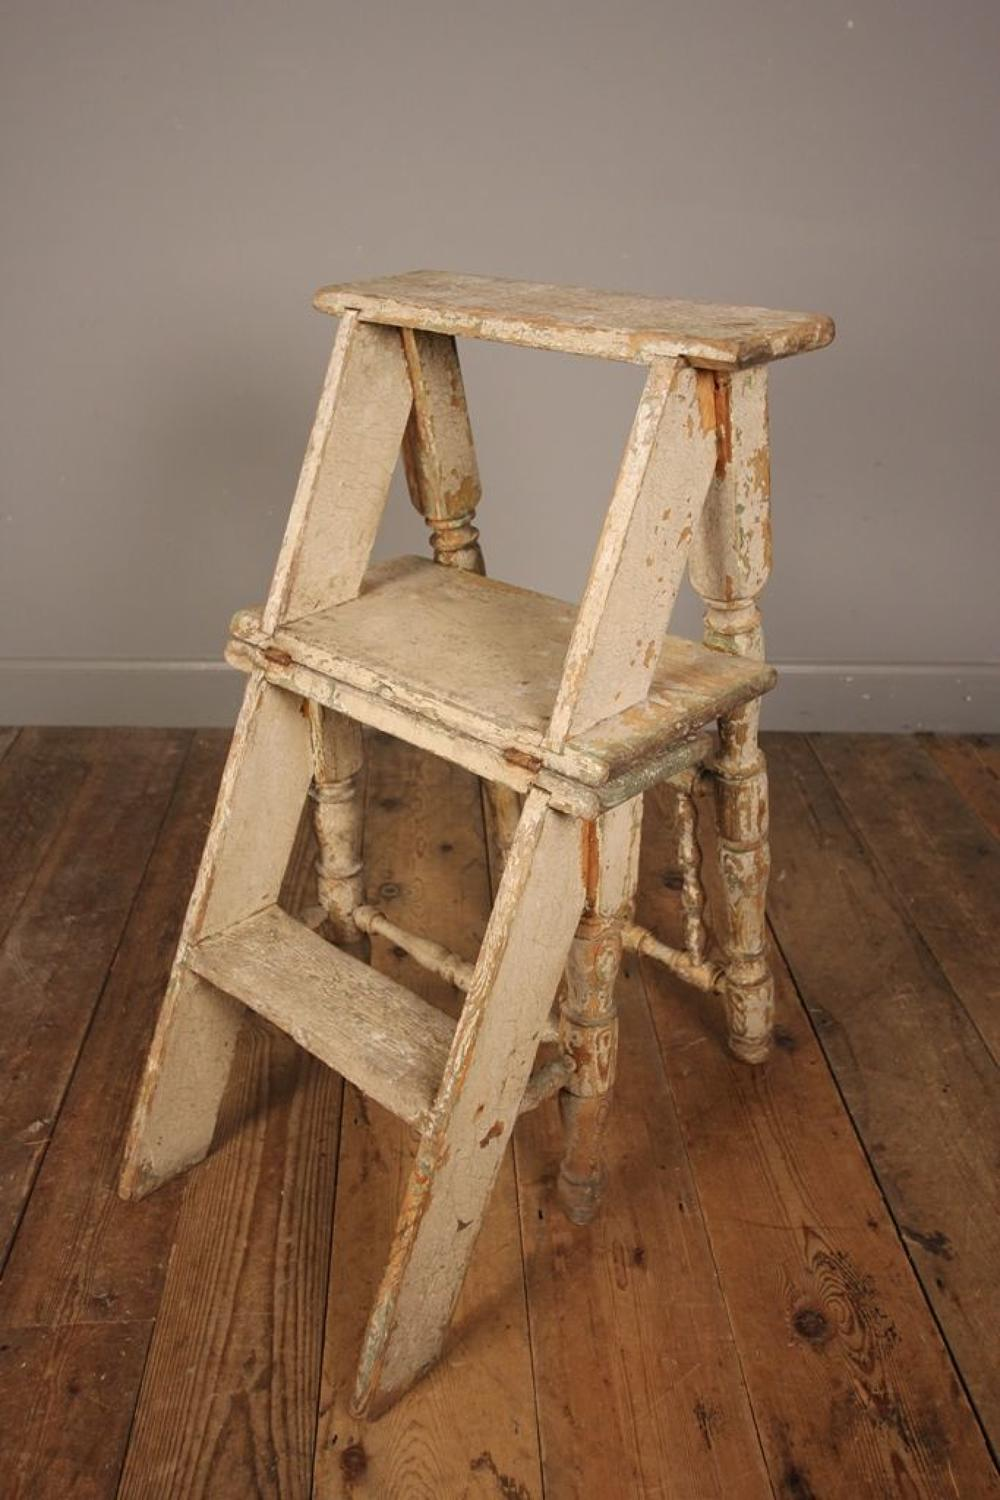 19th Century Metamorphic Chair in wonderful original paint